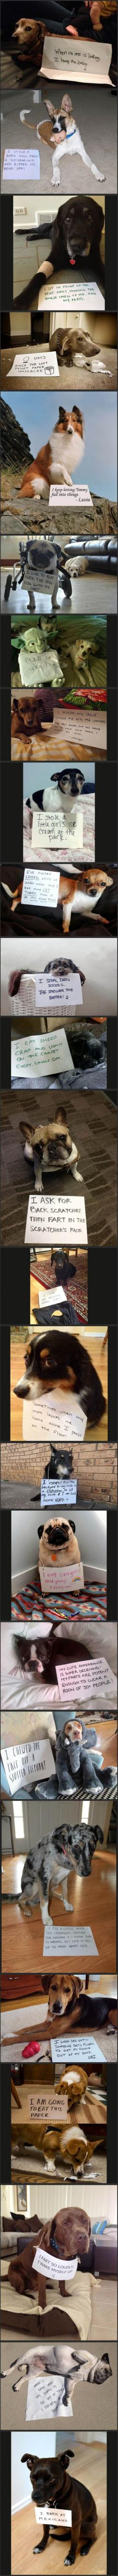 hahaha these are my favorite thing ever.: Funny Animals, Dog Shame, Dog Shaming, Animal Shame, Bad Dog, Funny Dogs Hilarious, So Funny, Dog Confession